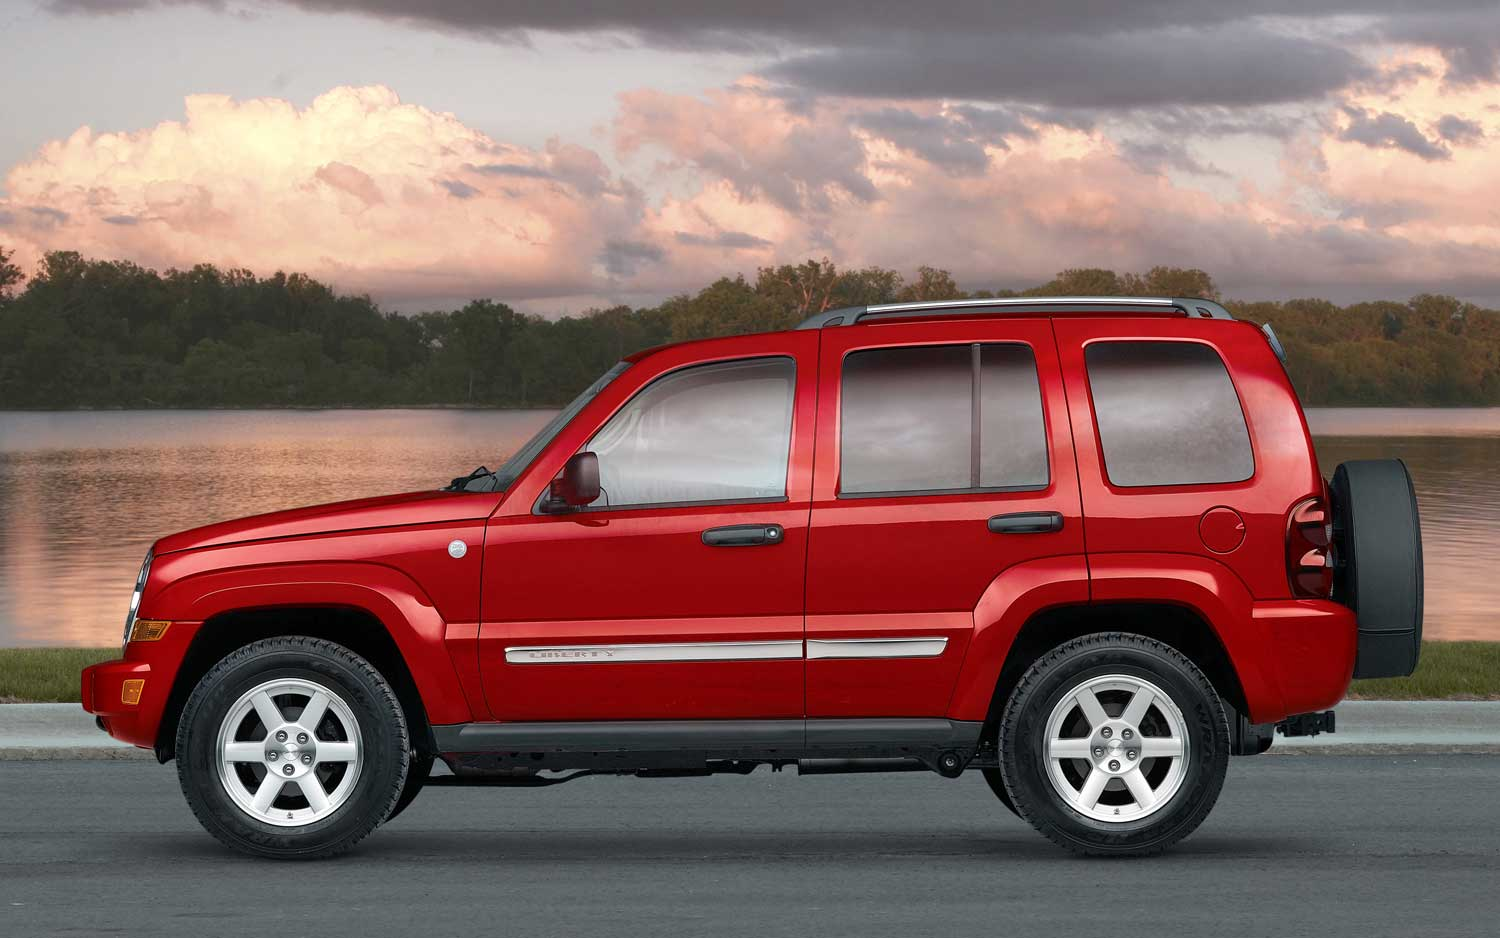 The Recall Issued For 2004 2005 Jeep Liberty Models Earlier This Year Has  Been Expanded To Include Model Year 2006 And 2007 Vehicles.